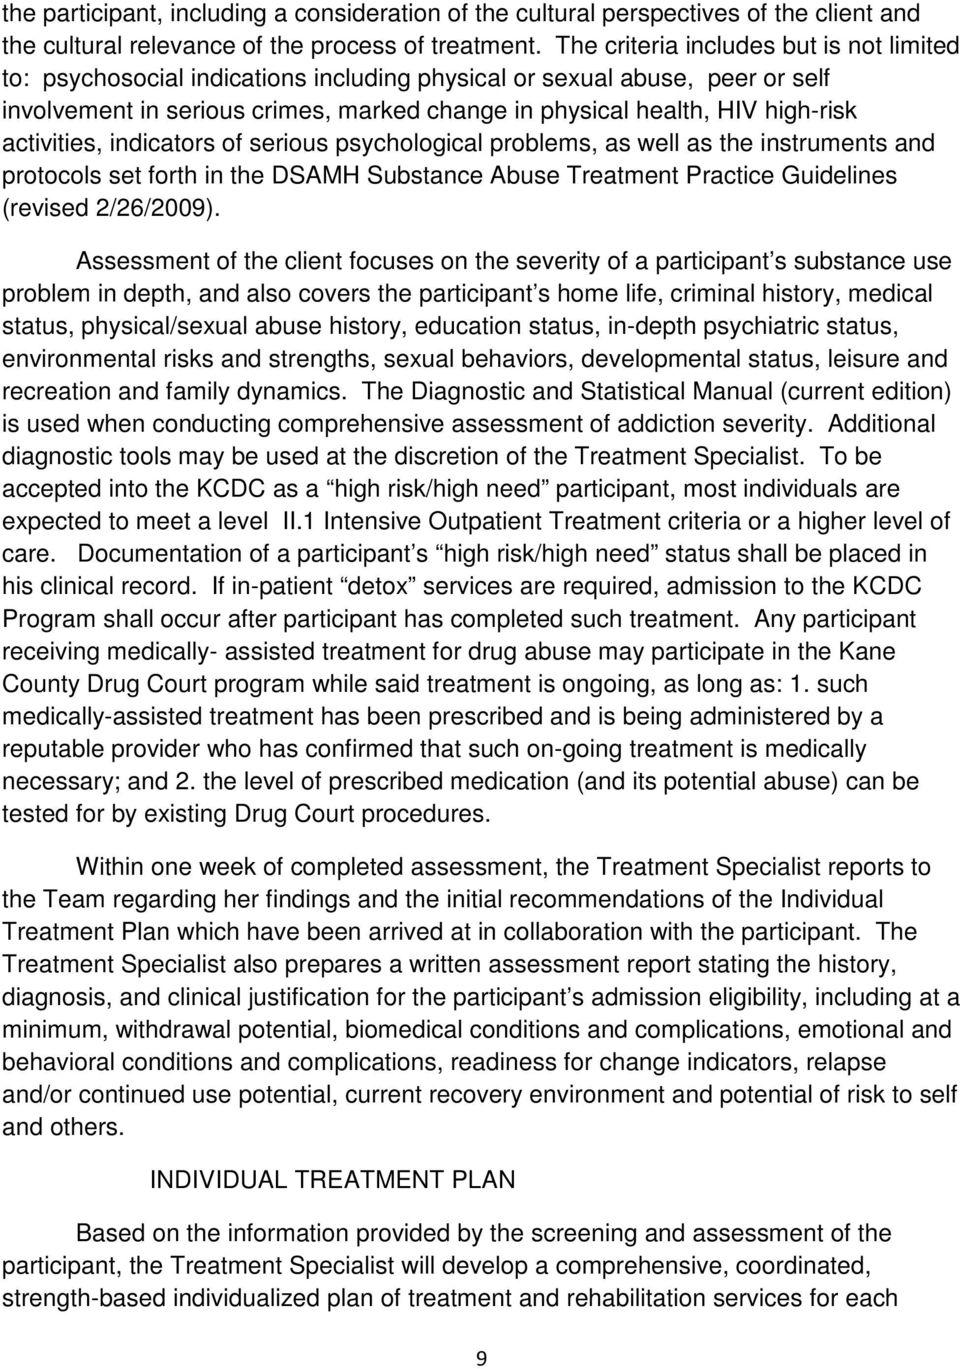 activities, indicators of serious psychological problems, as well as the instruments and protocols set forth in the DSAMH Substance Abuse Treatment Practice Guidelines (revised 2/26/2009).